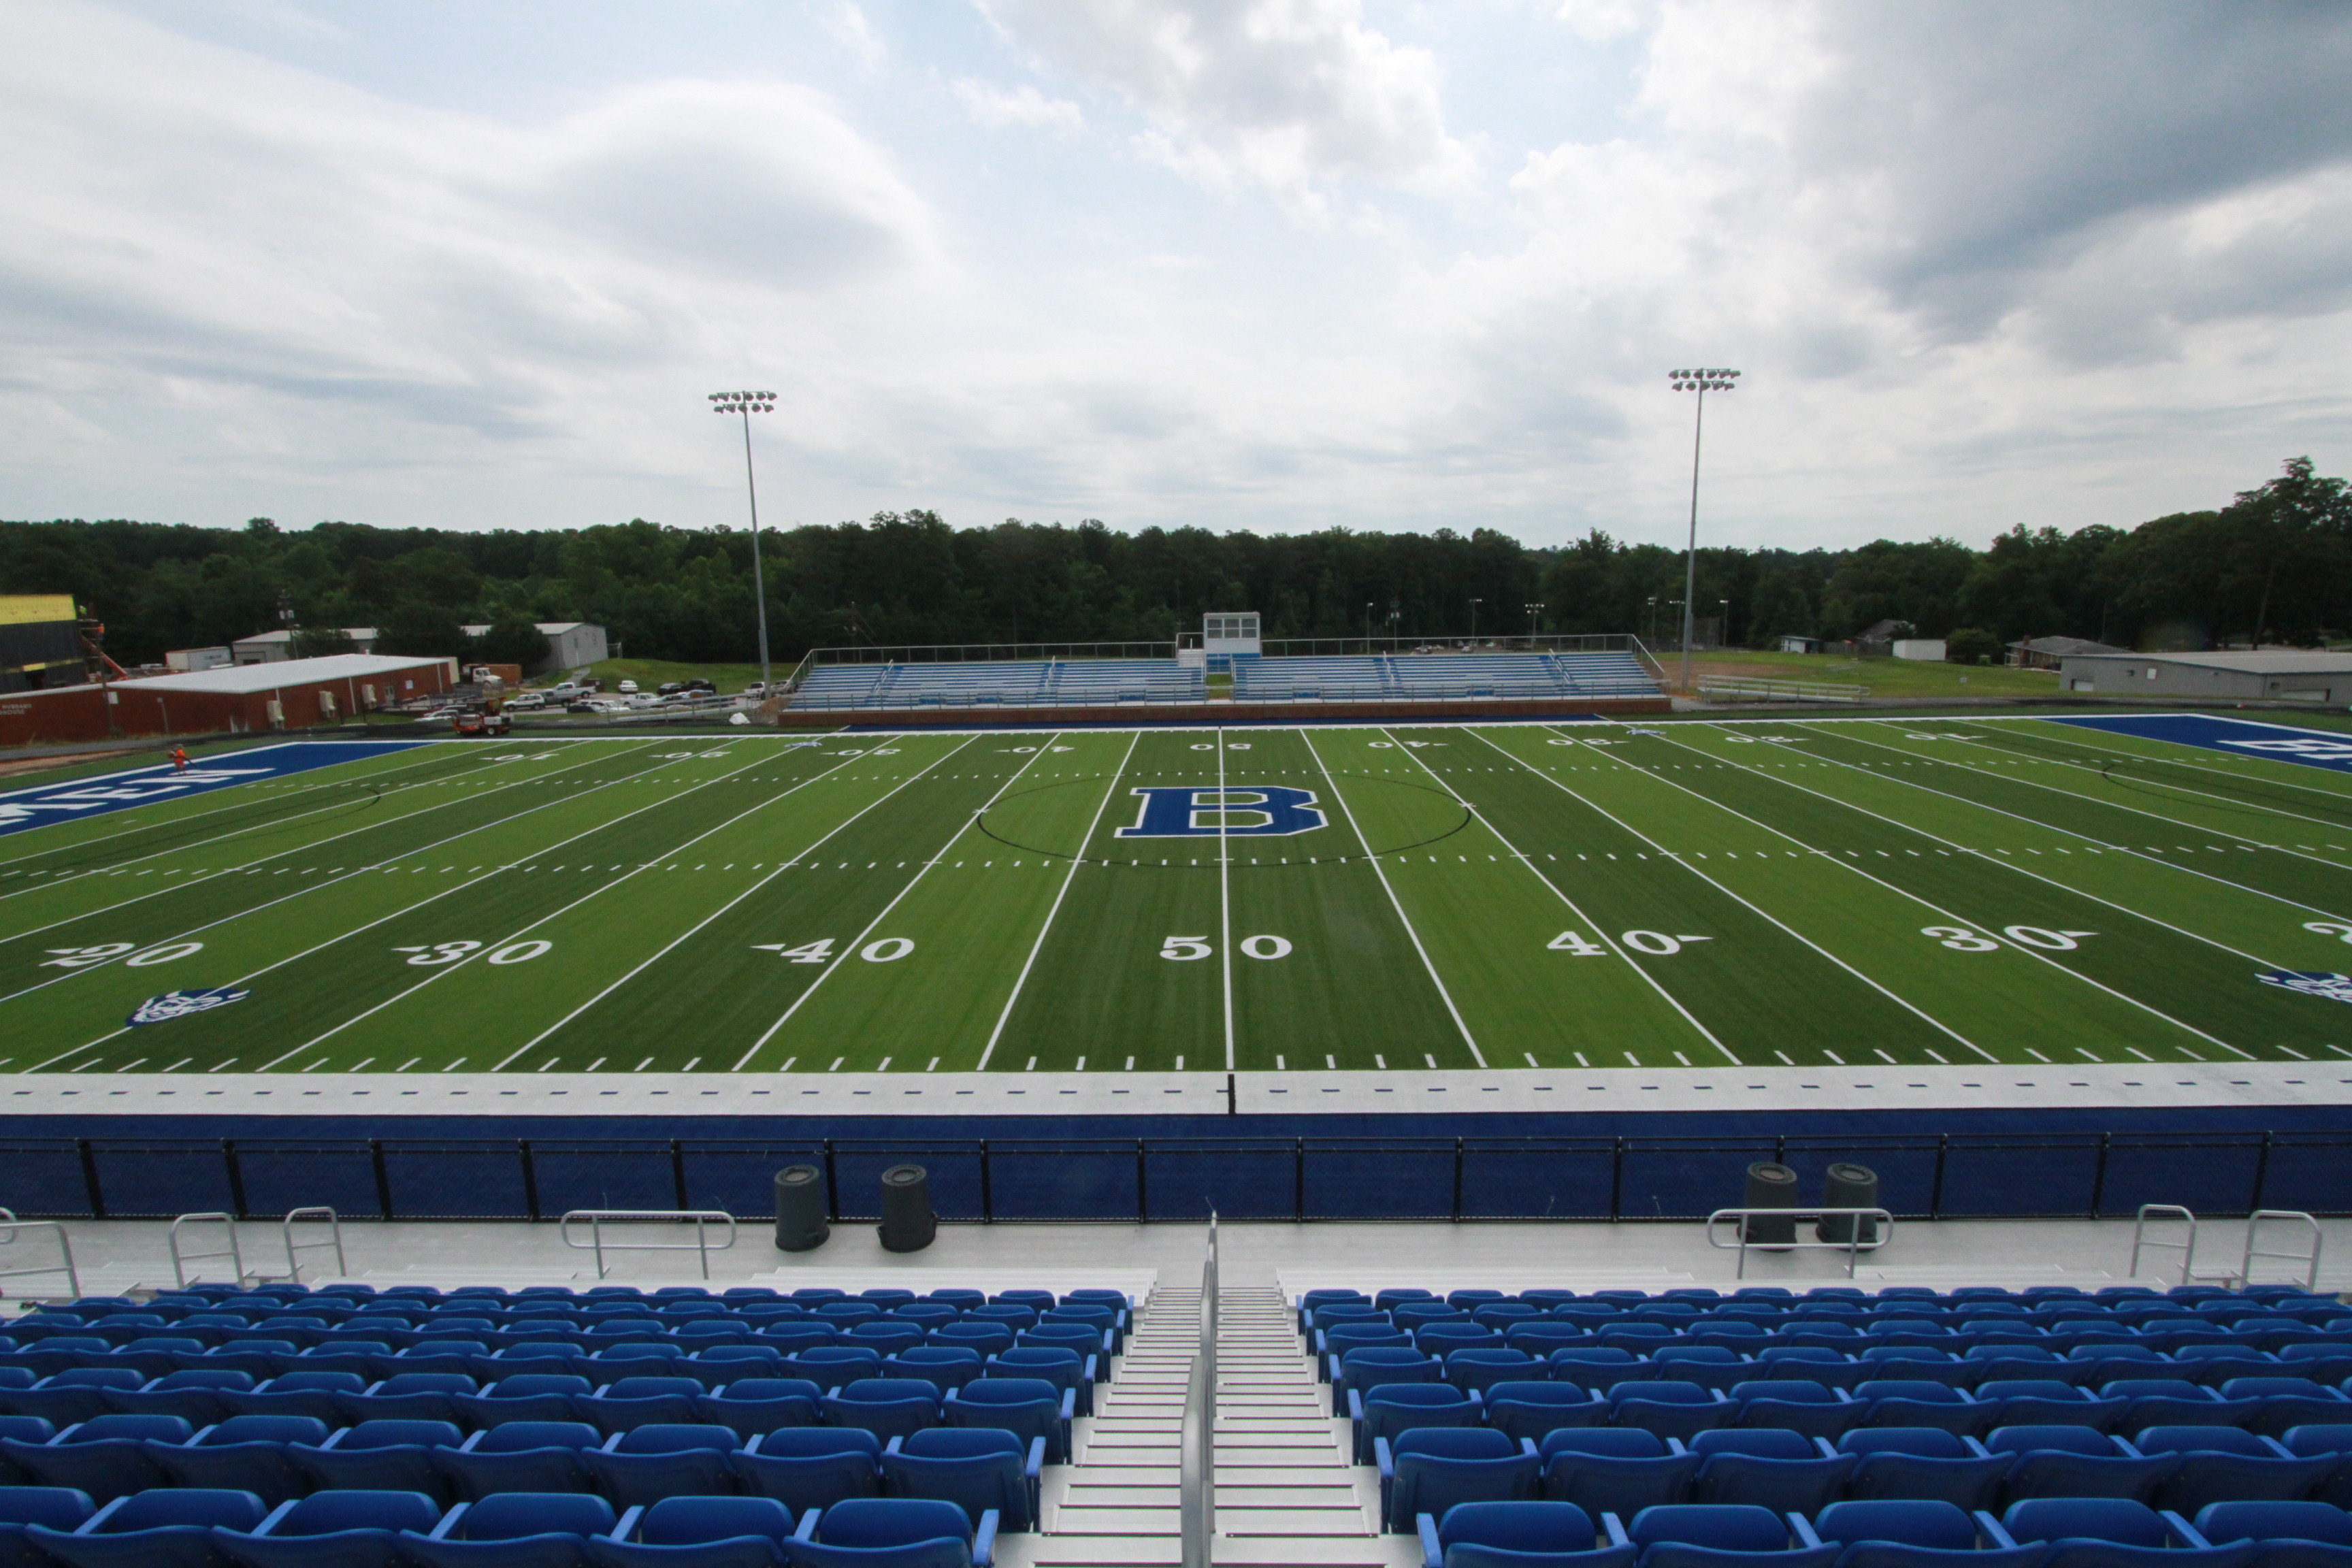 The Hartford At Work >> Bremen Blue Devils Now Playing on Shaw Sports Turf